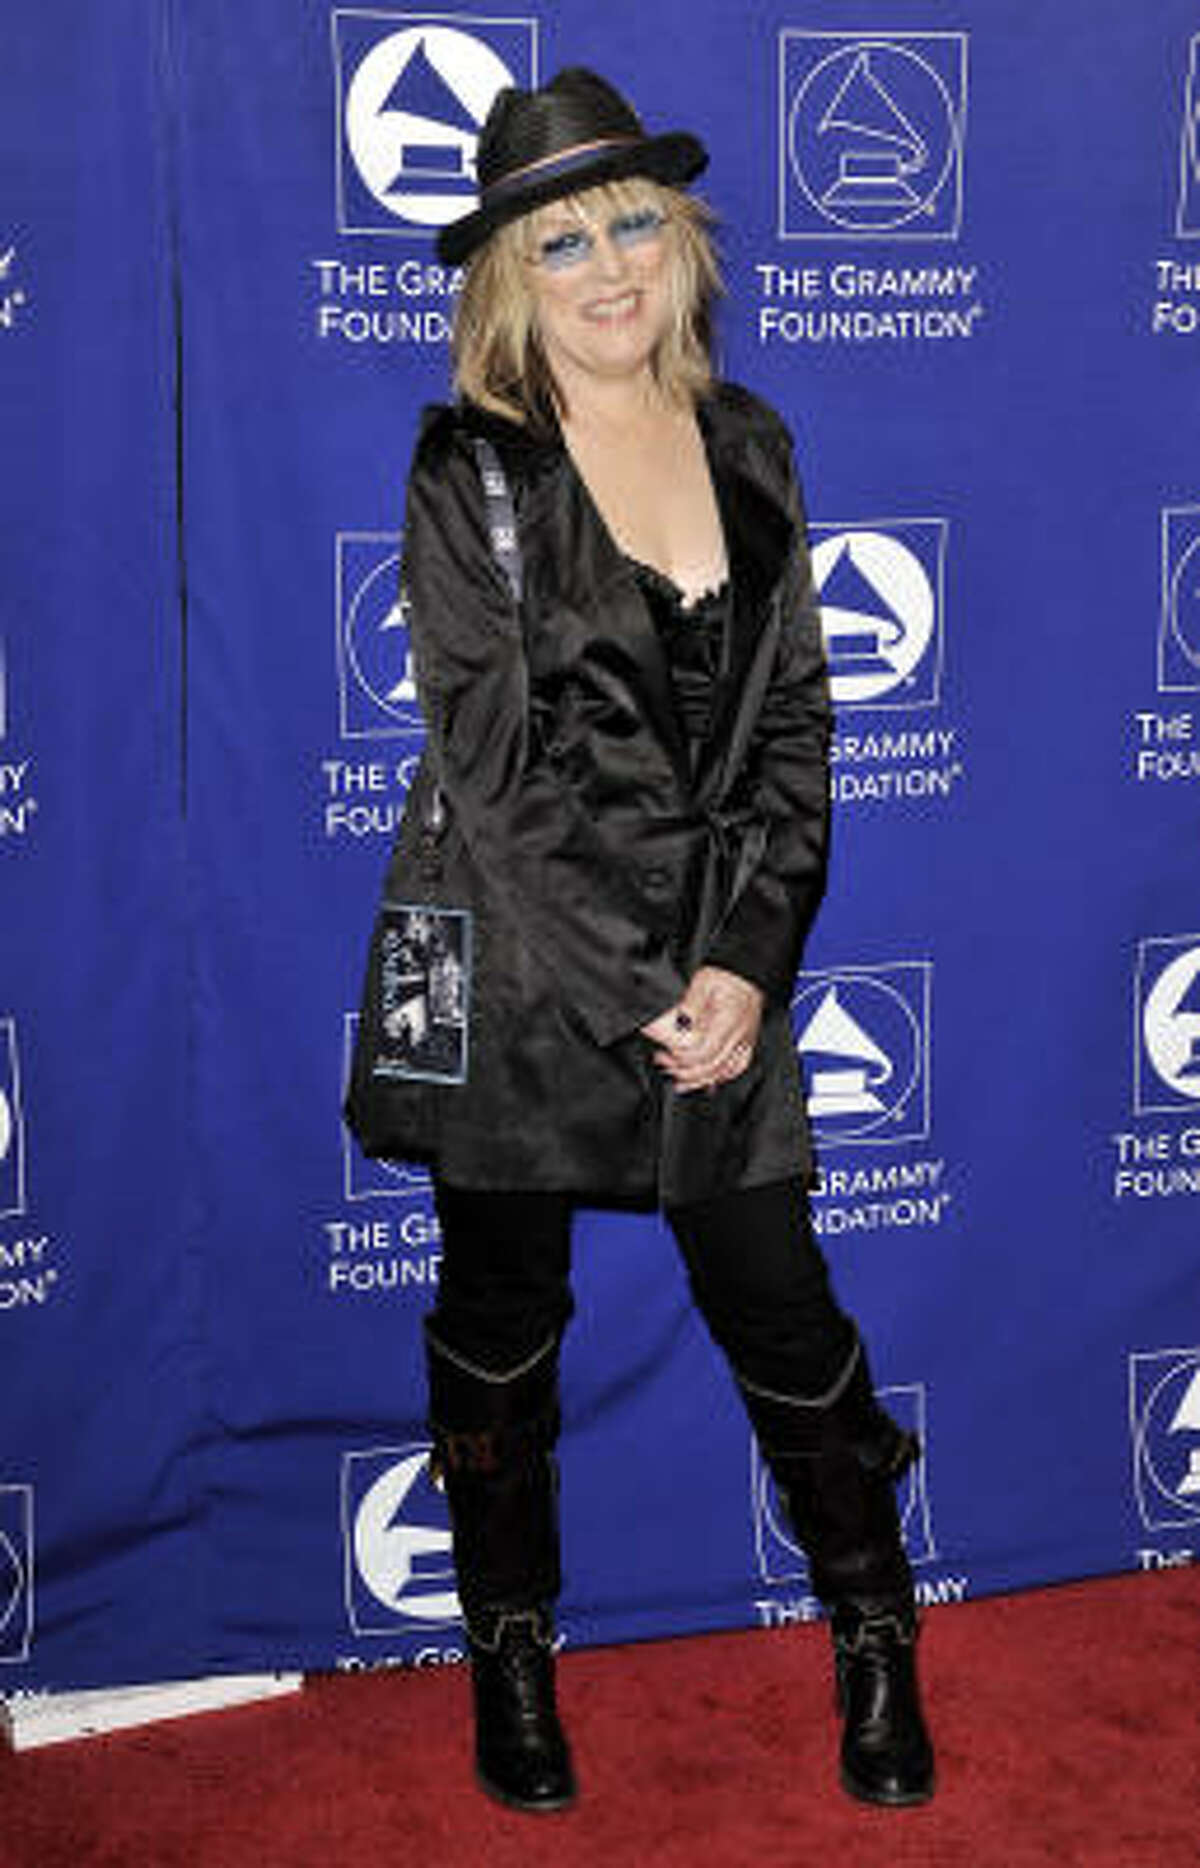 Lucinda Williams got her share of the red-carpet attention at the Grammys.